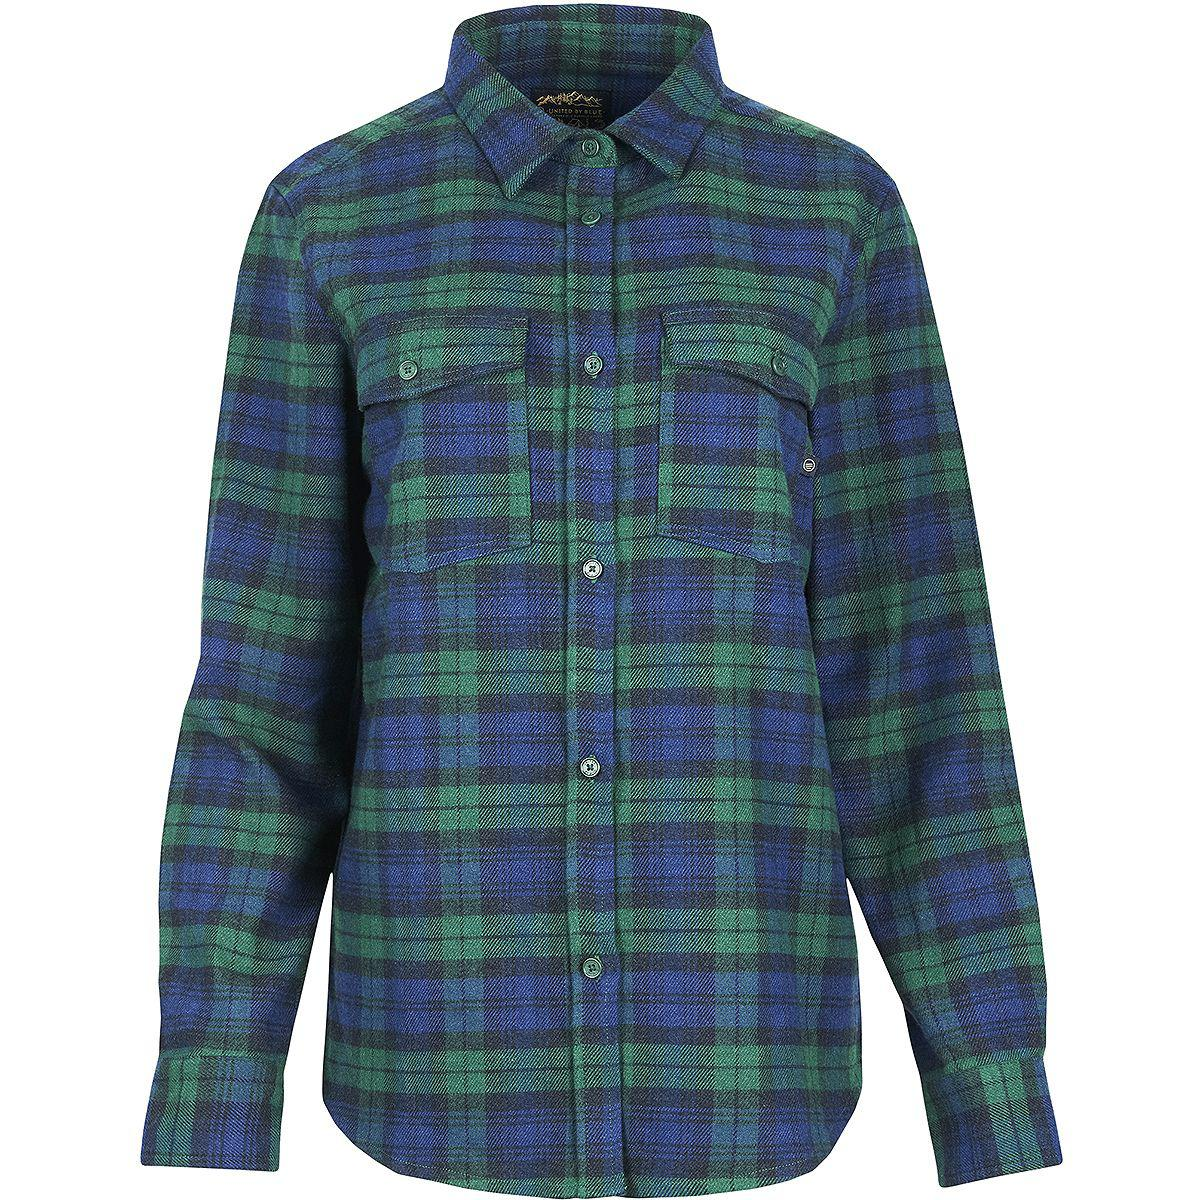 75c8da07 Lyst - United By Blue Fremont Flannel Button-up in Green